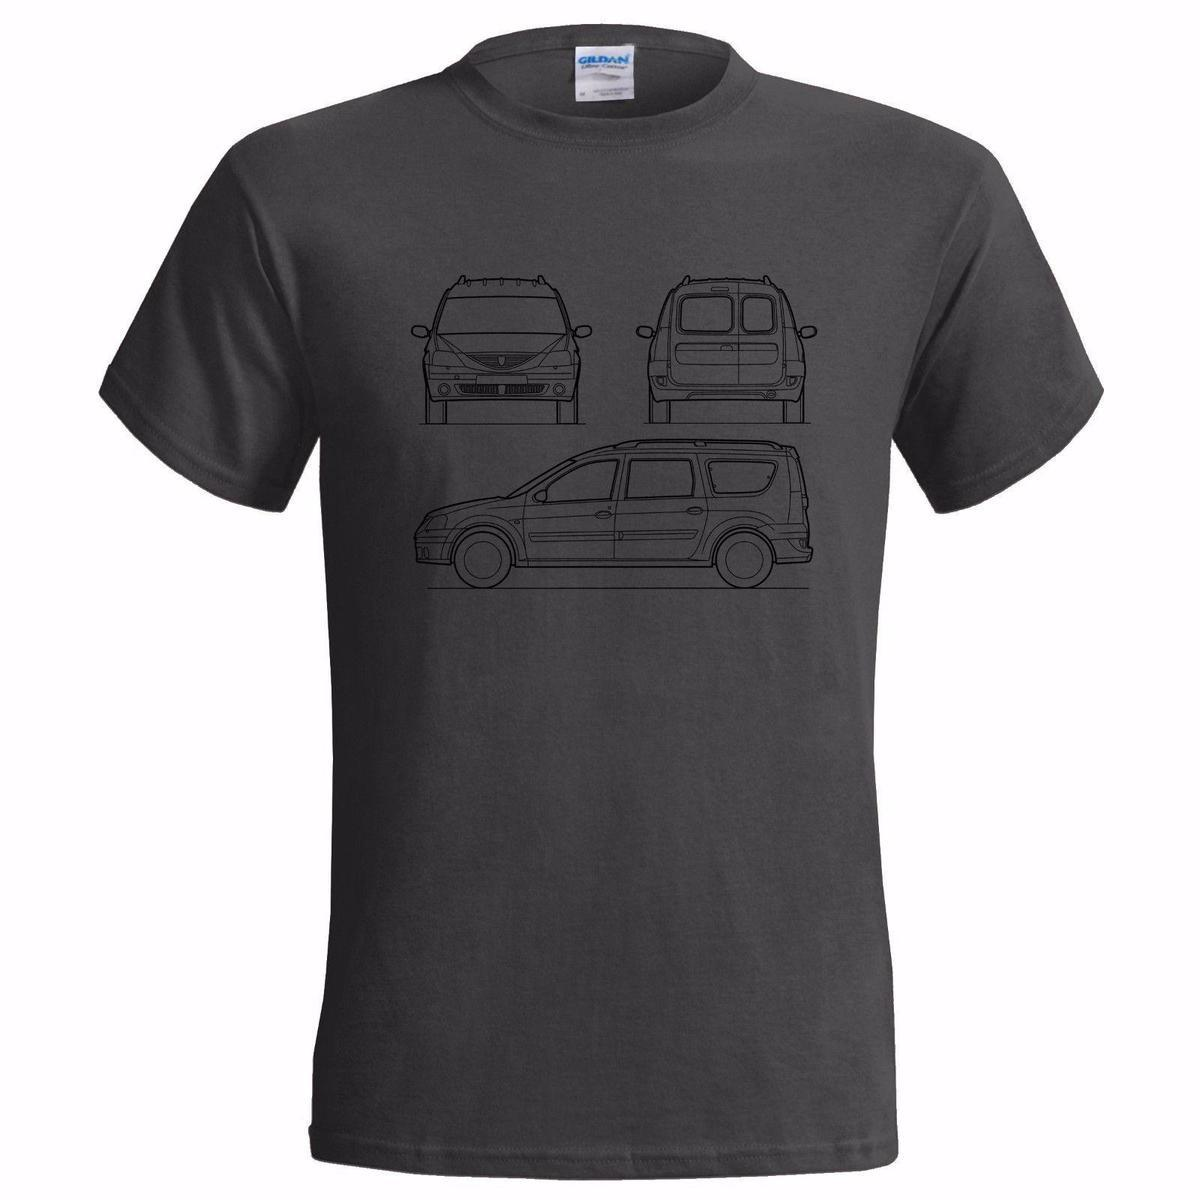 DACIA LOGAN TECH DRAWING MENS T SHIRT CLASSIC CAR RENAULT FAMILY